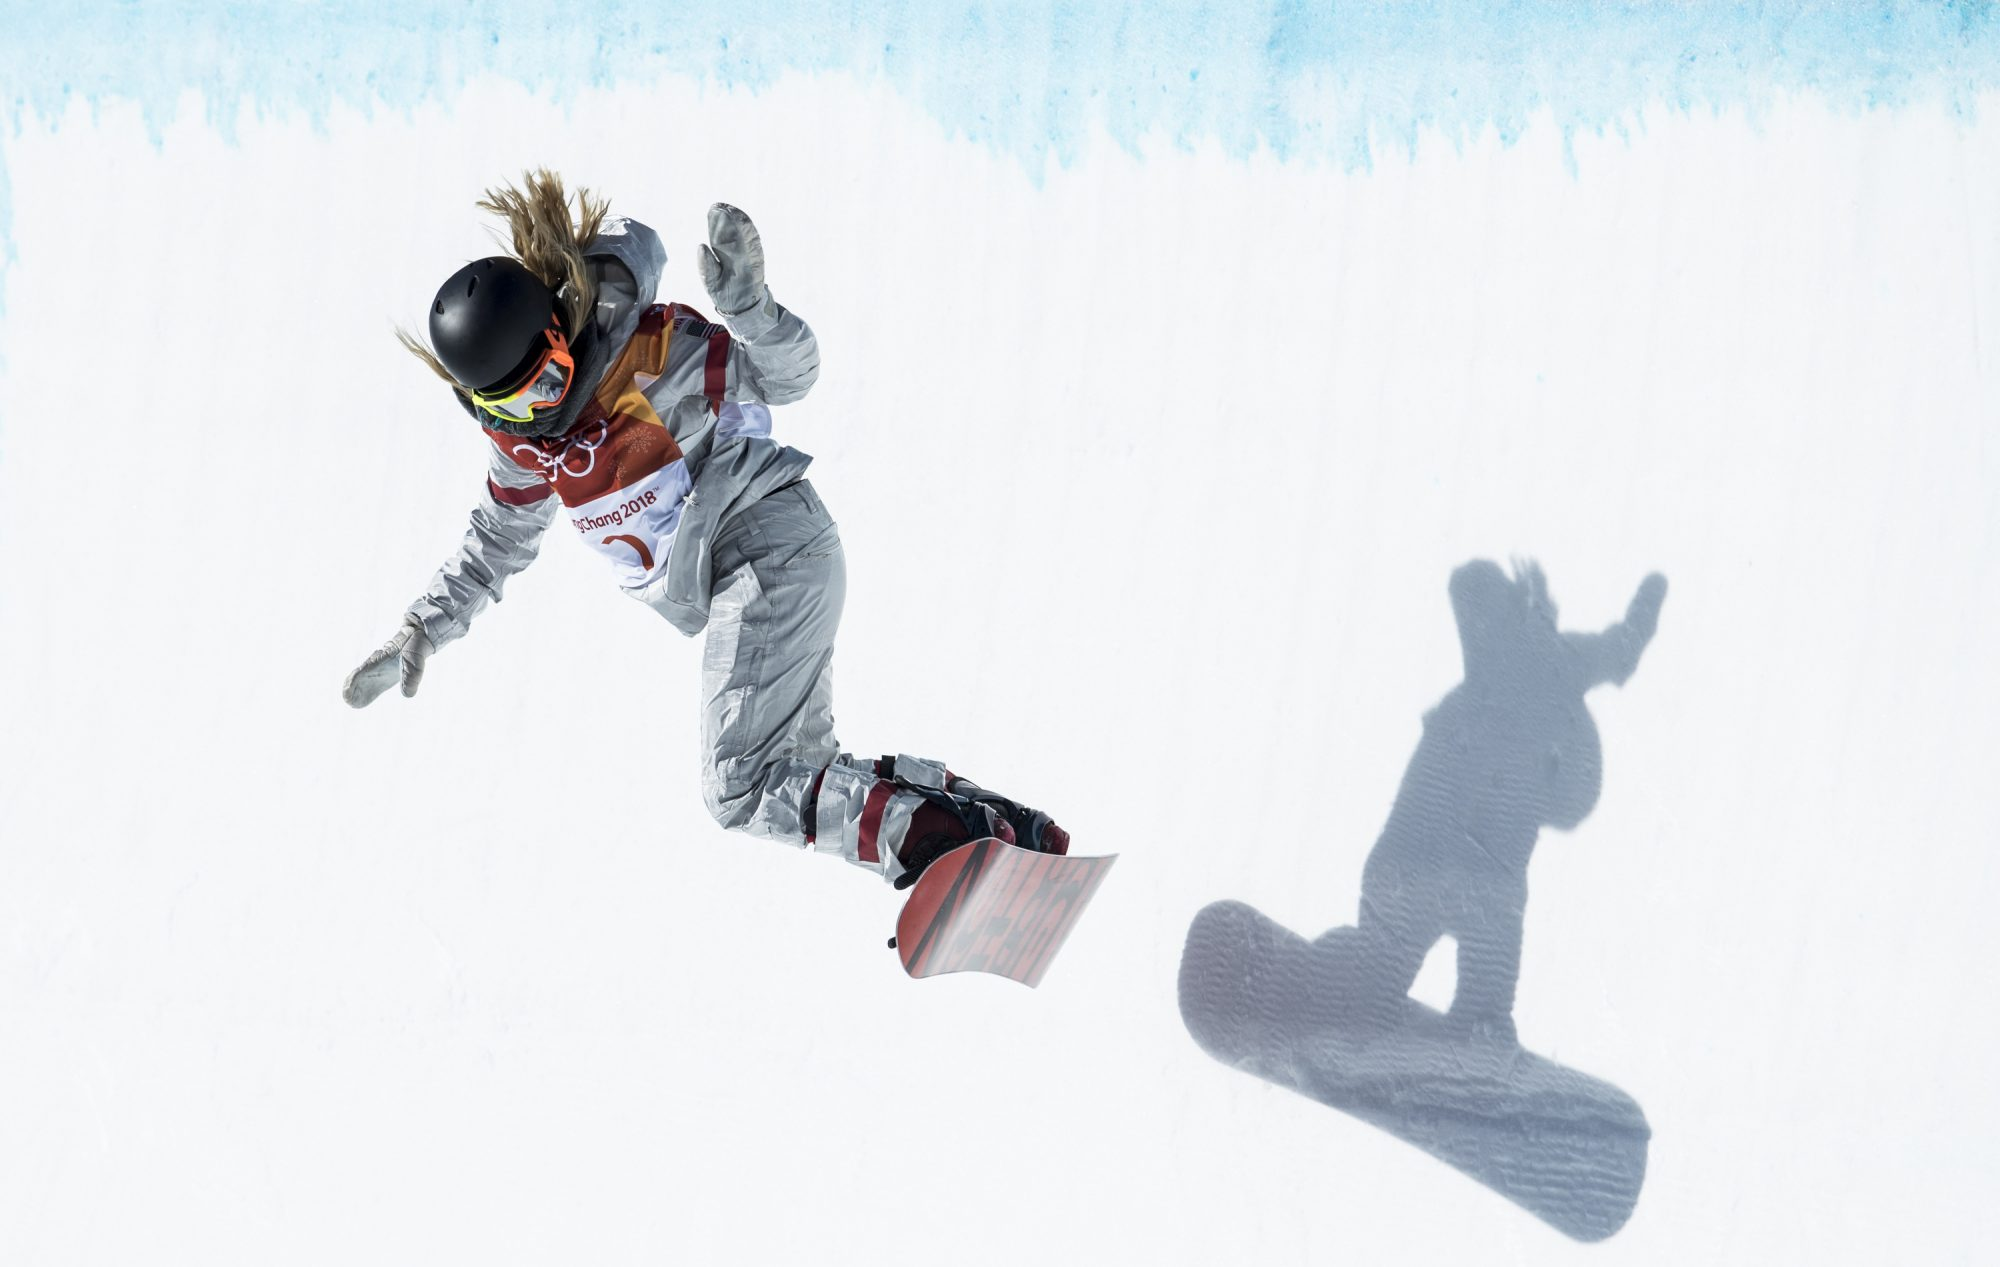 Chloe Kim snowboarding at 2018 Winter Olympics